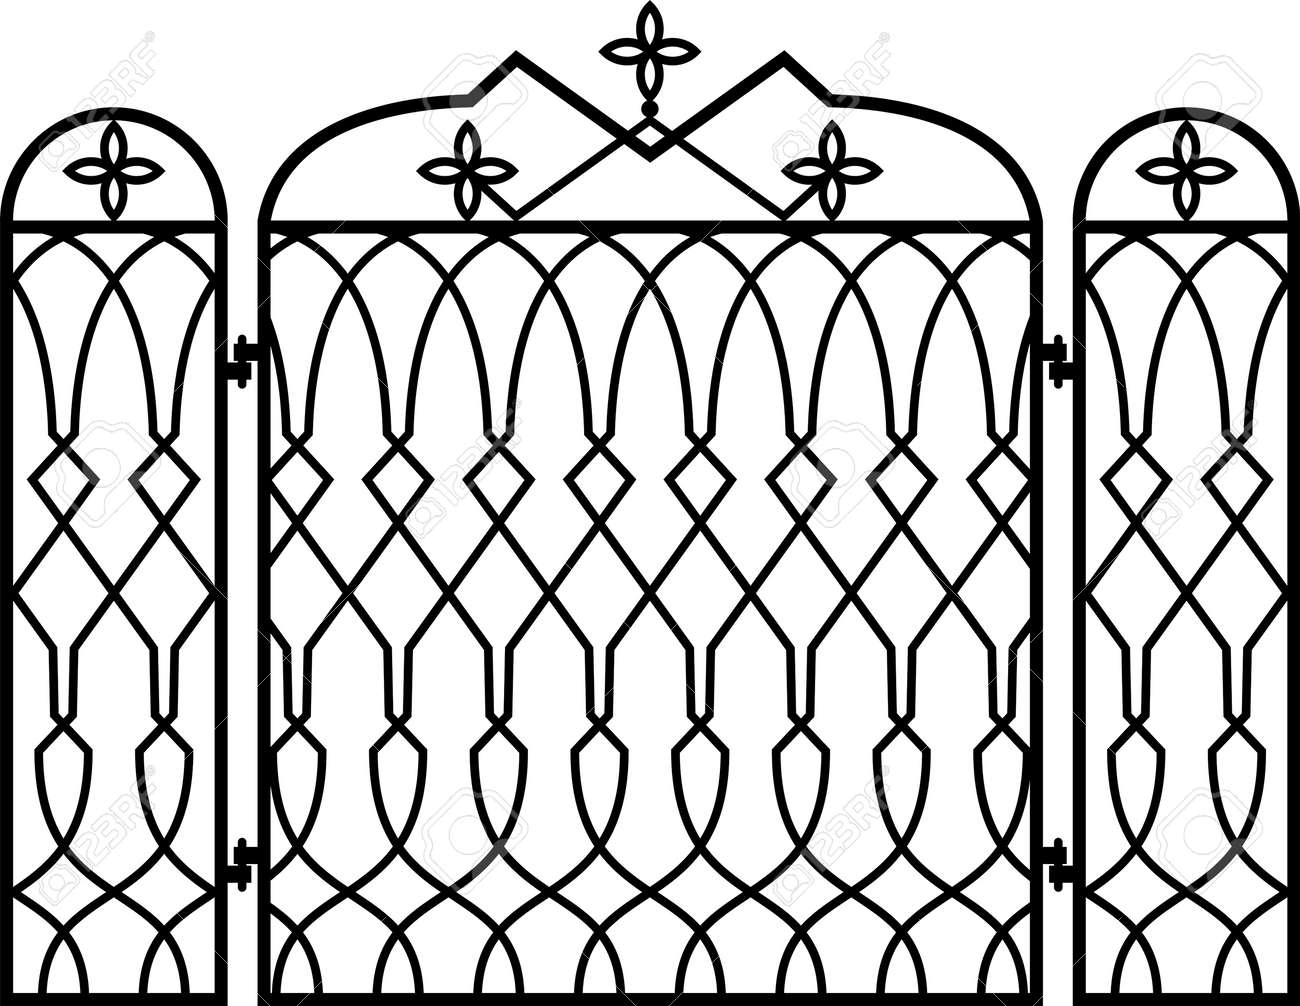 wrought iron fireplace screen vector illustration royalty free